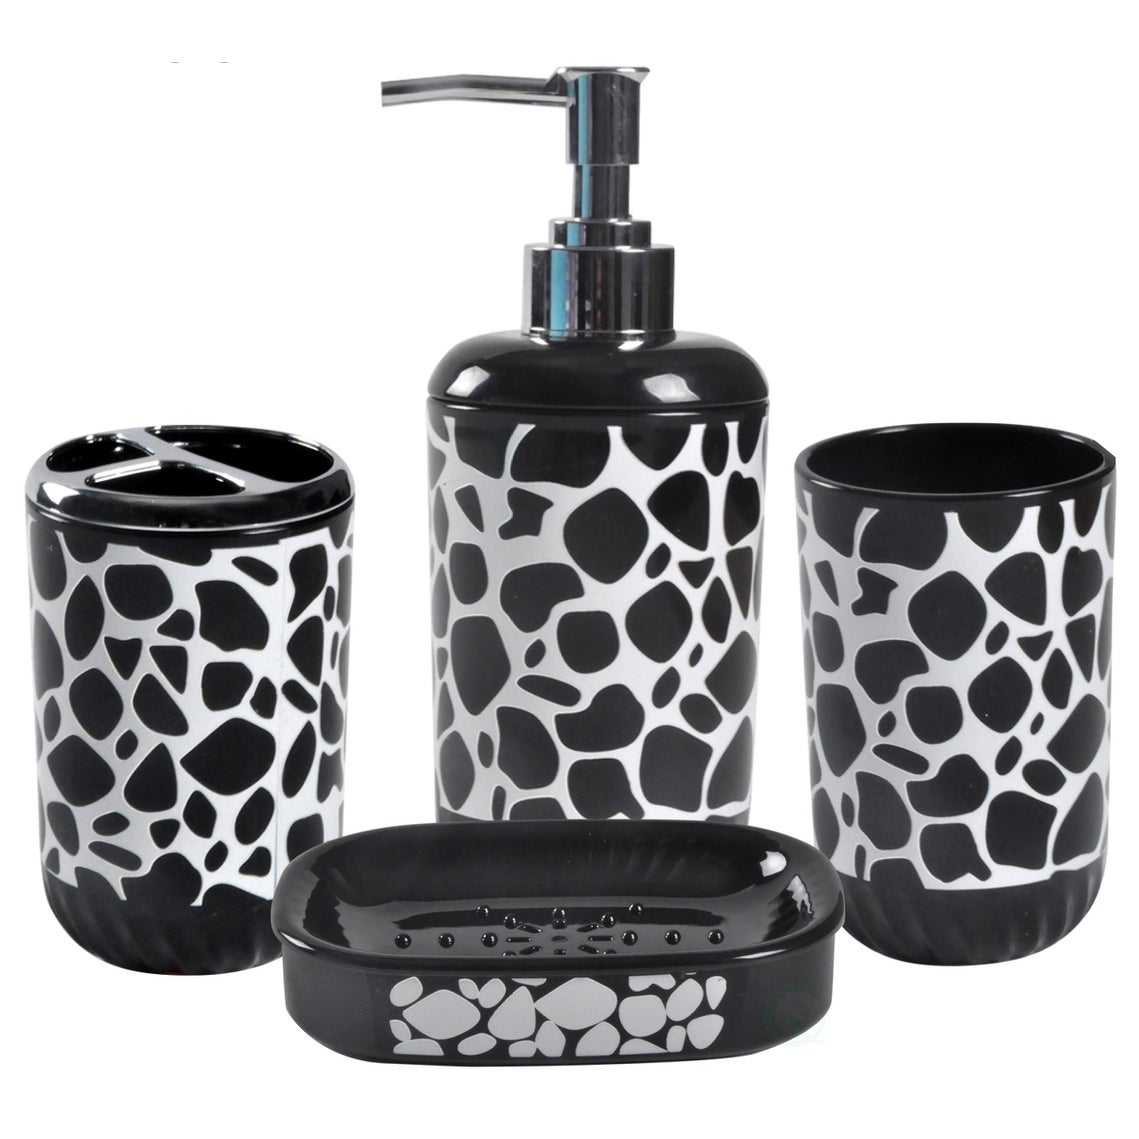 Shop 4 Piece Bathroom Accessory Set Includes Soap Dispenser